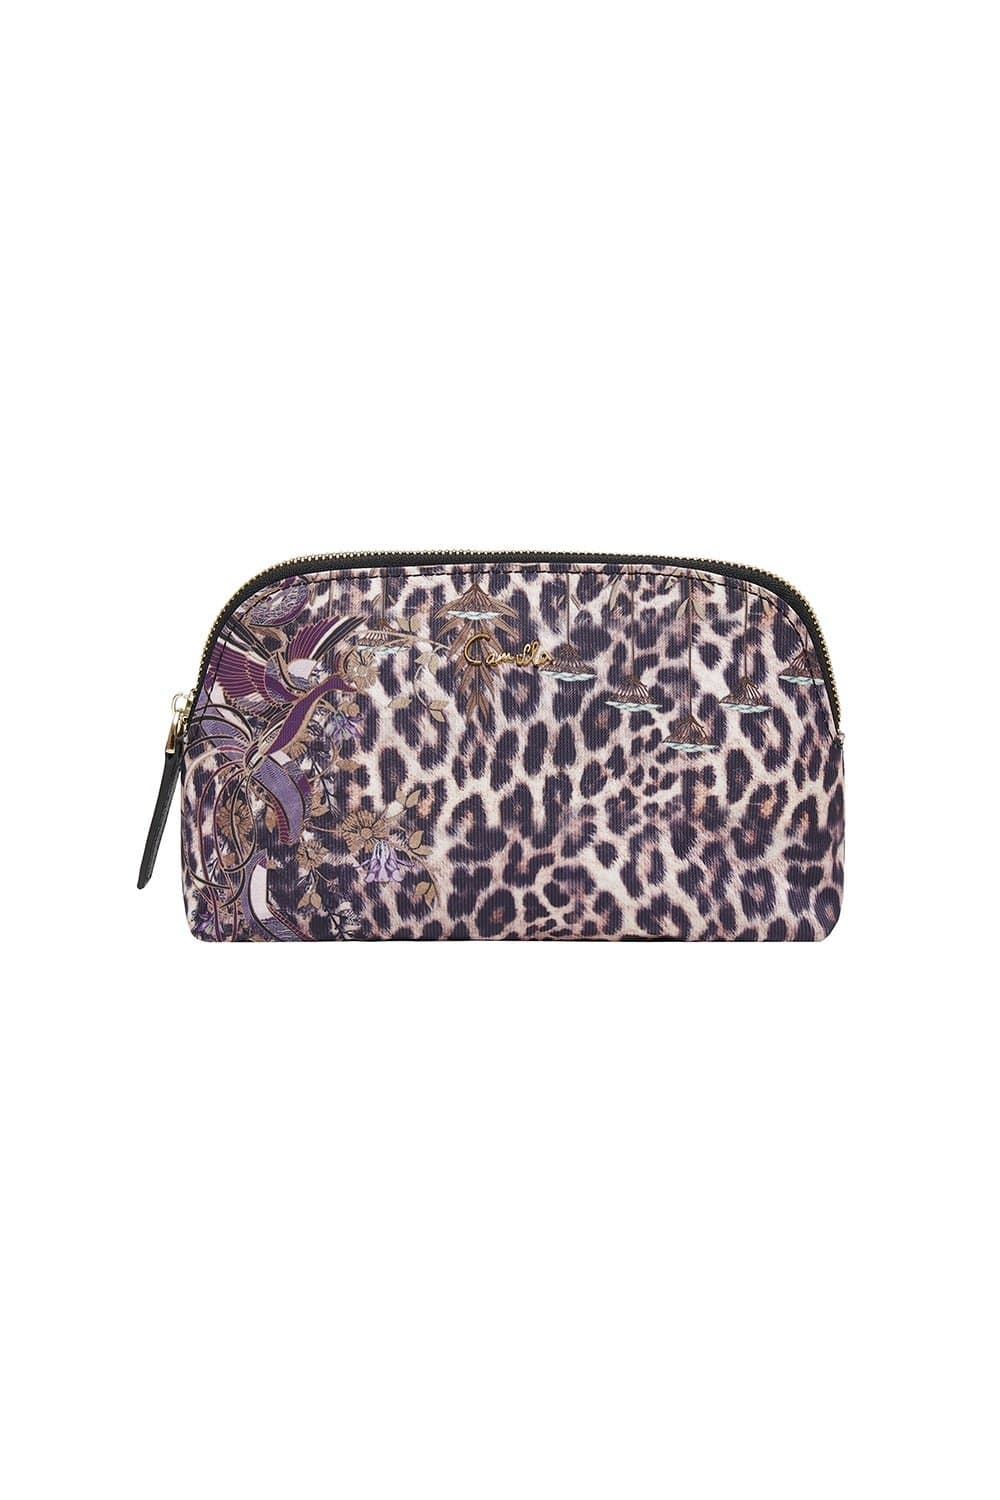 Camilla Nomadic Nymph Small Cosmetic Bag